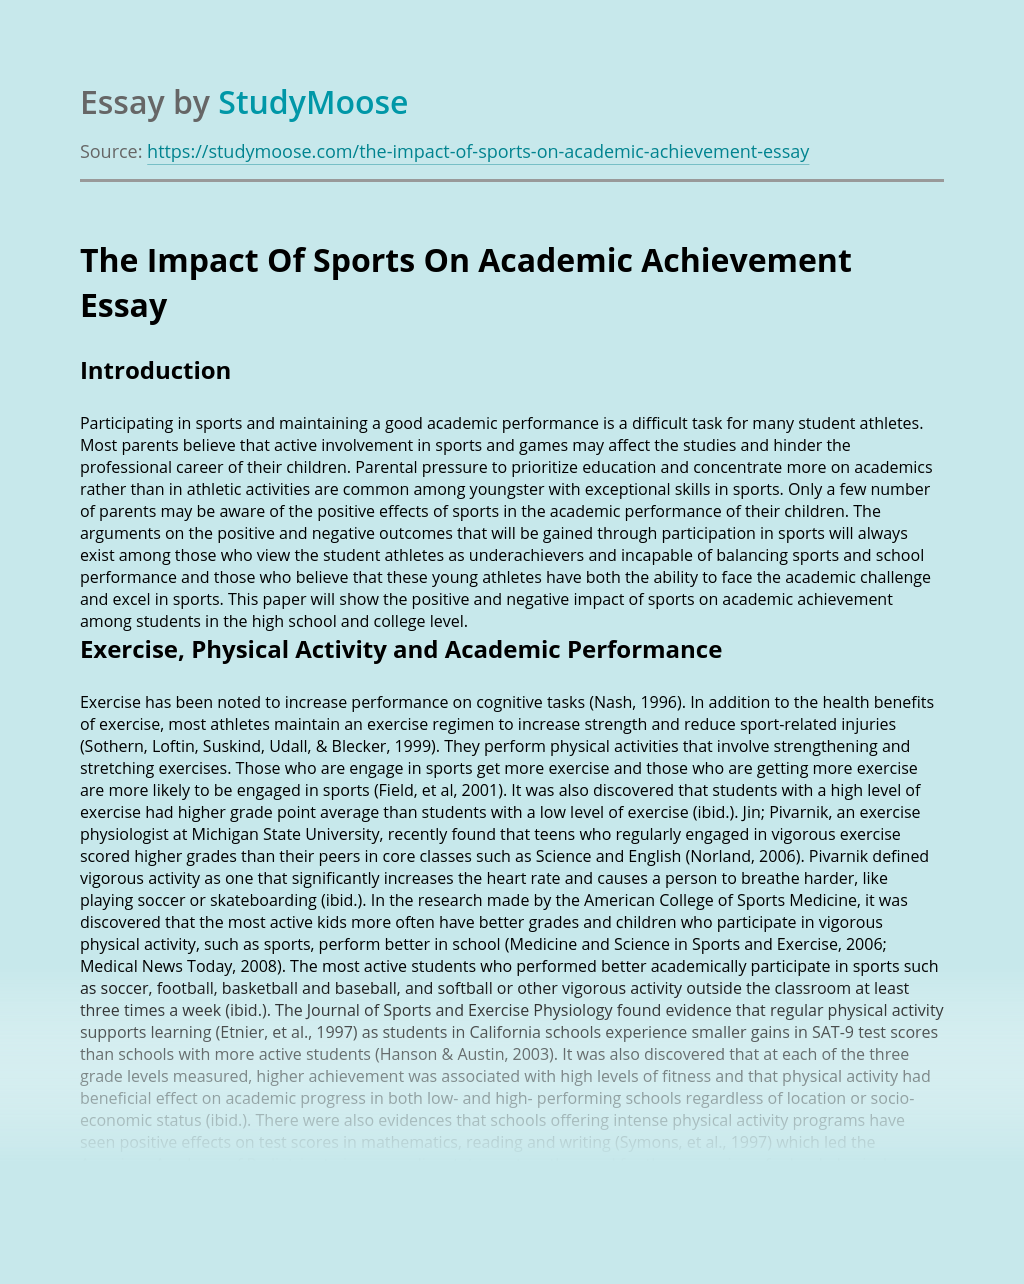 The Impact Of Sports On Academic Achievement